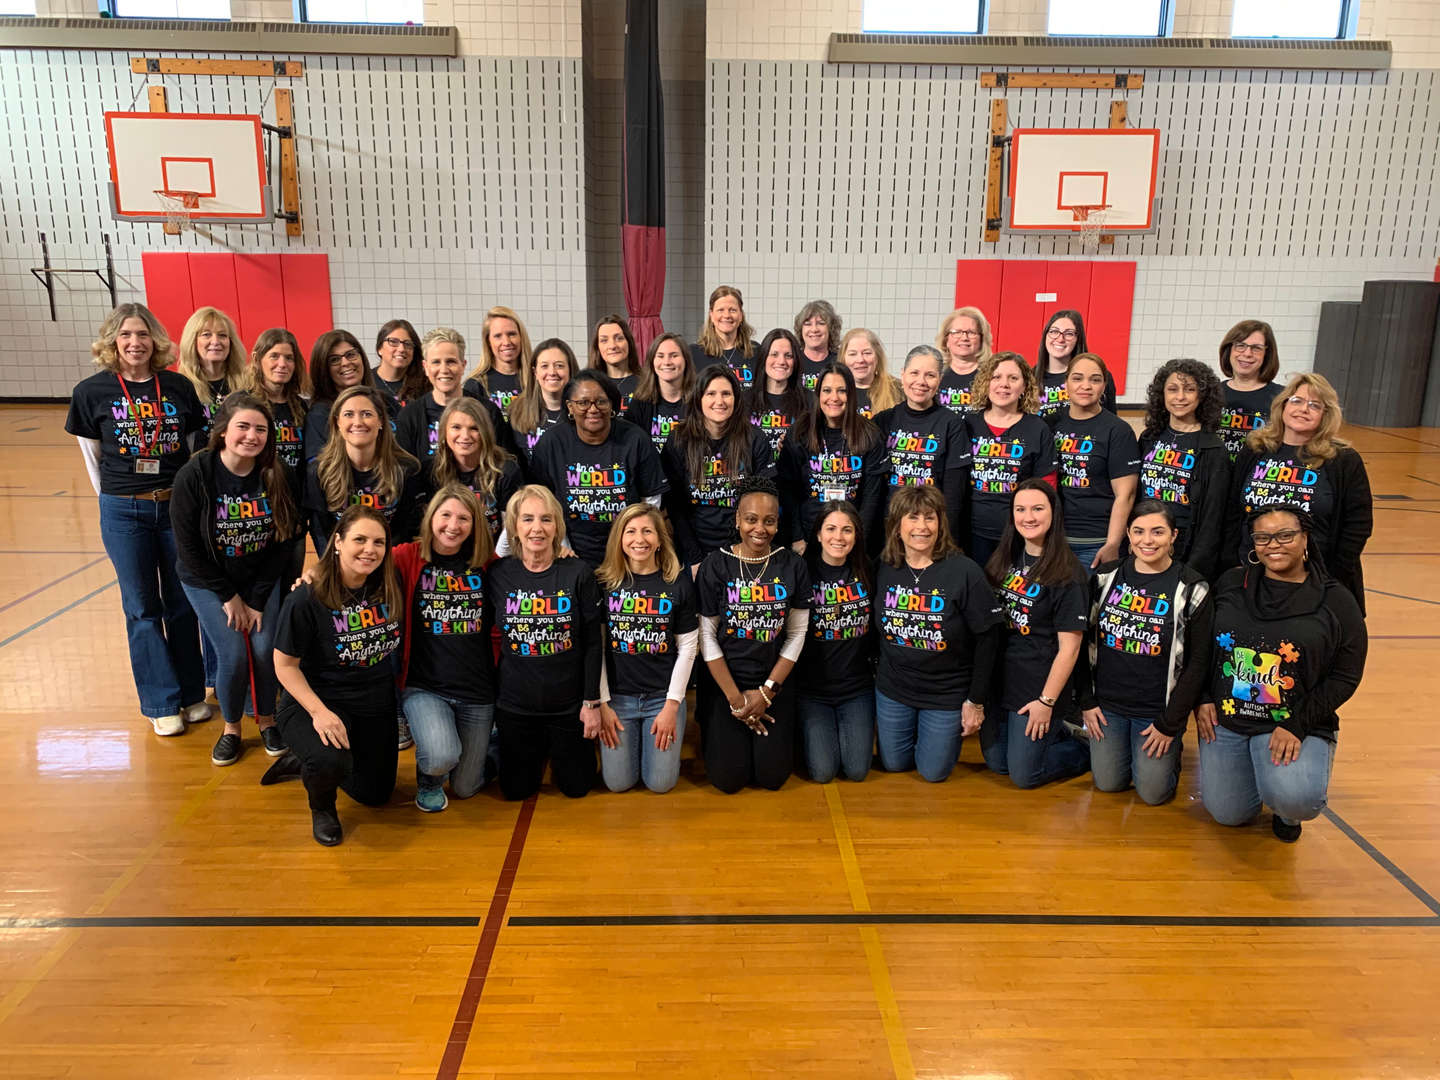 Staff Photo wearing Be Kind shirts!